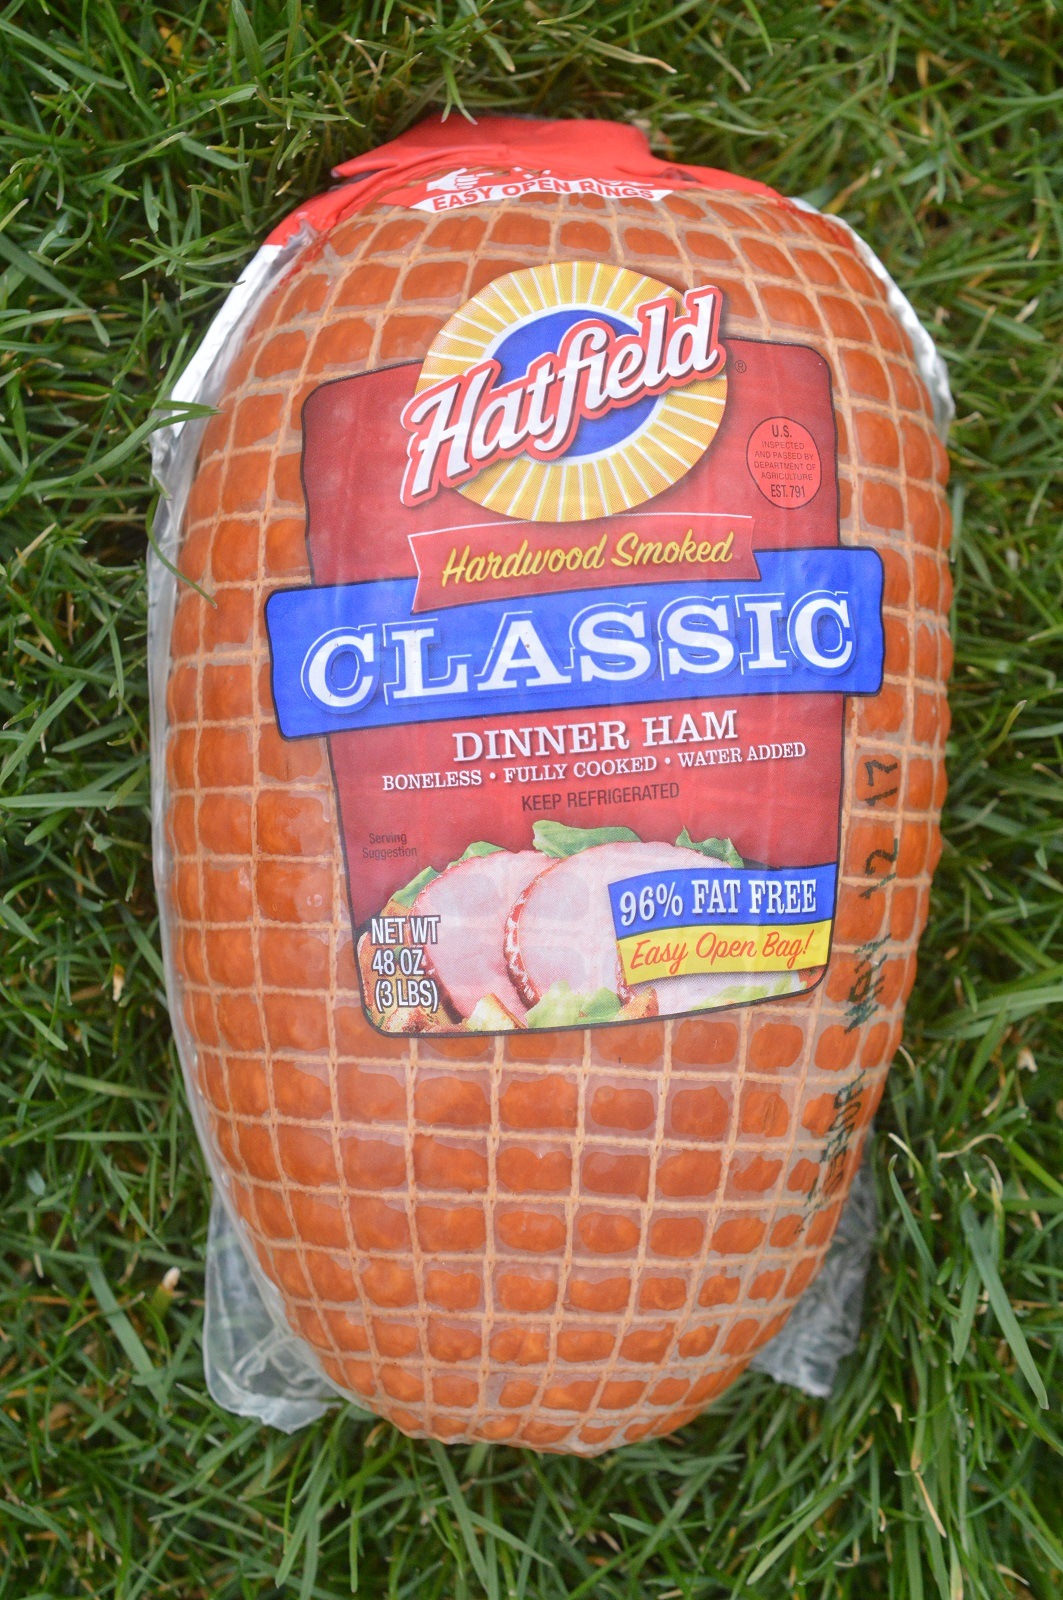 Delicious every time - The classic Hatfield Ham